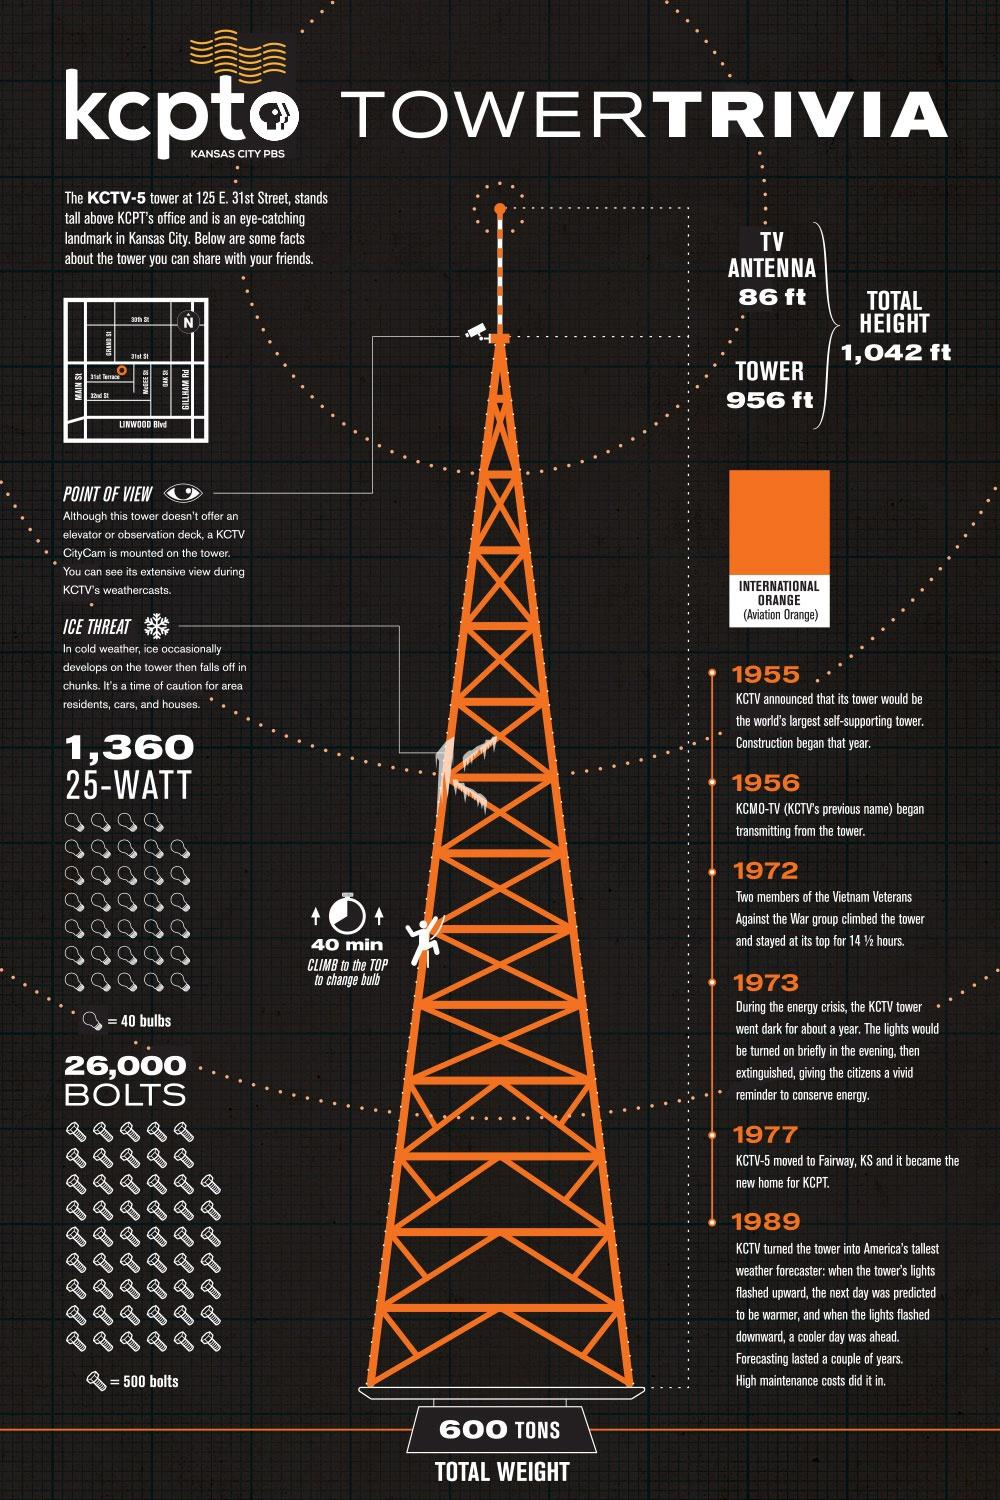 KCPT Tower Trivia. Picture of a tower with facts and statistics of the tower along the sides